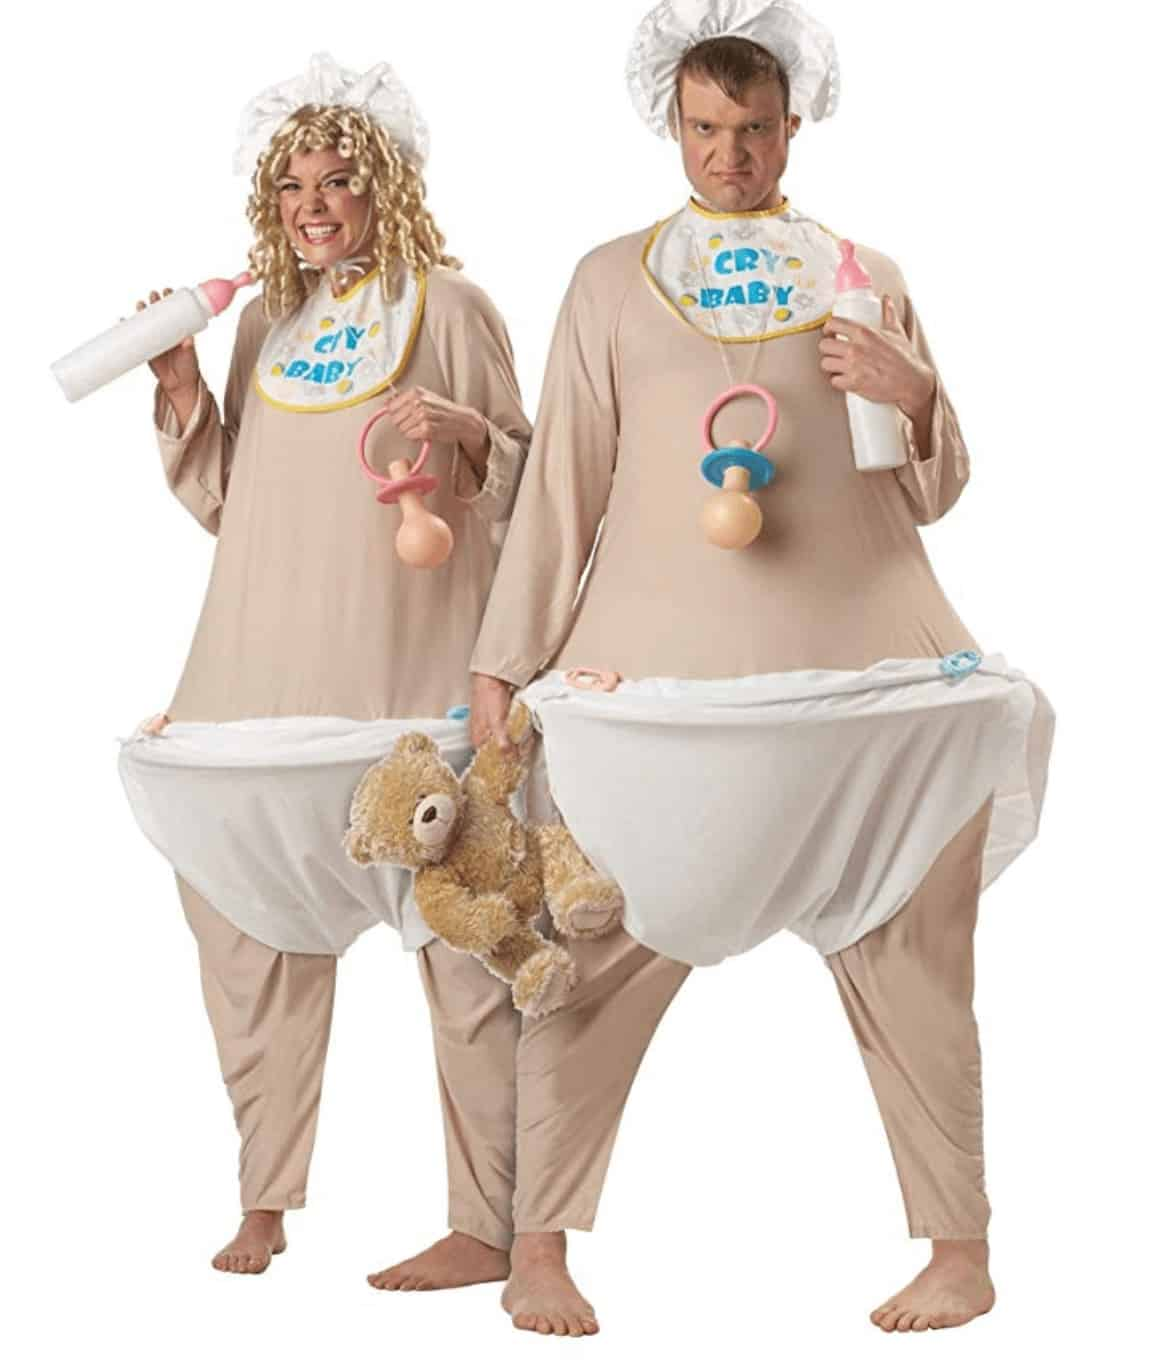 A man and a woman wearing beige baby costumes with wigs and baby accessories. They're holding a milk bottle, a pacifier, and a teddy bear.